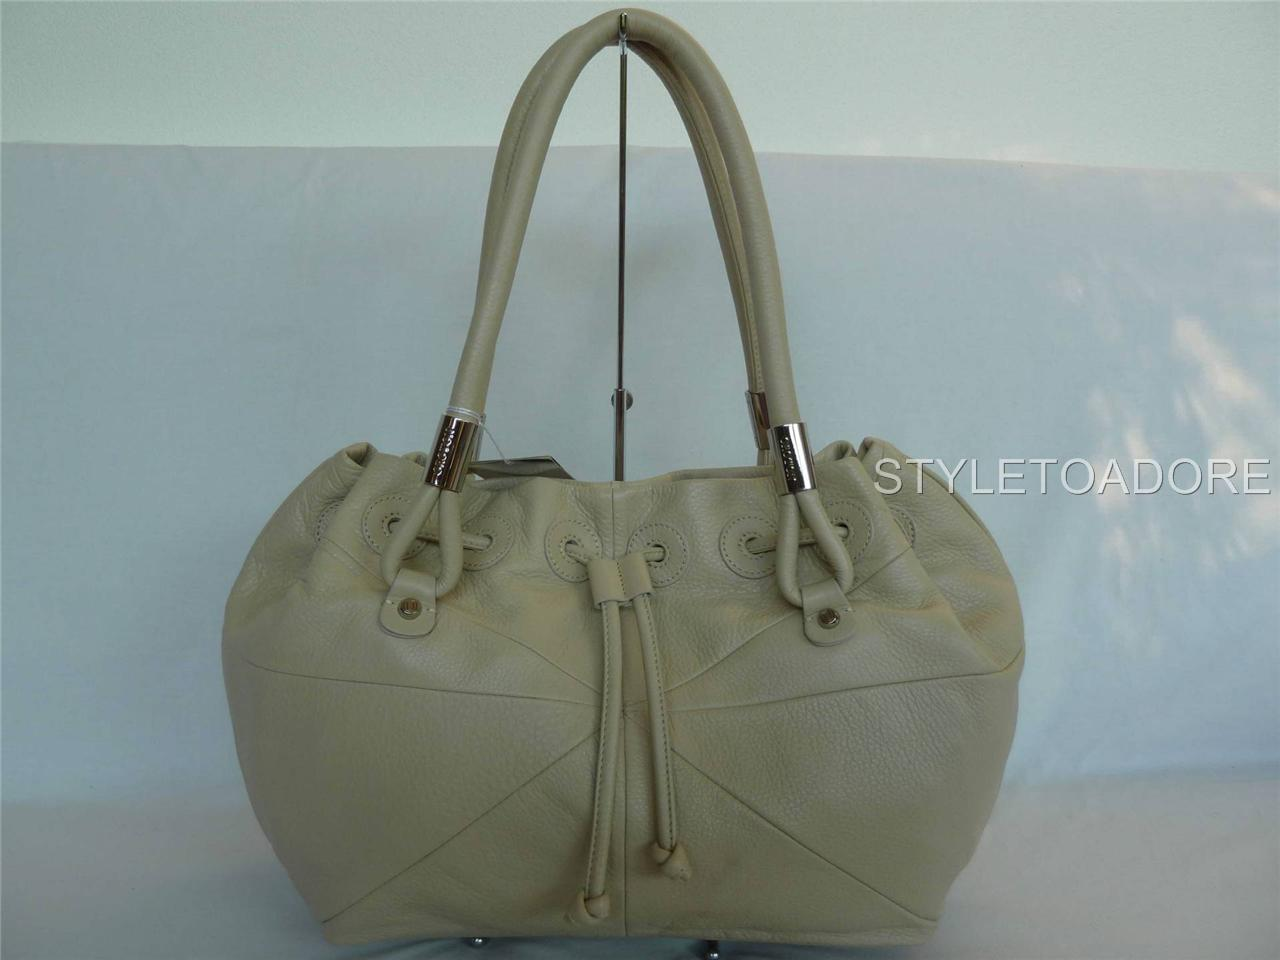 BNWT-OROTON-LINEA-TOTE-HANDBAG-BAG-IVORY-LEATHER-RRP-695-00